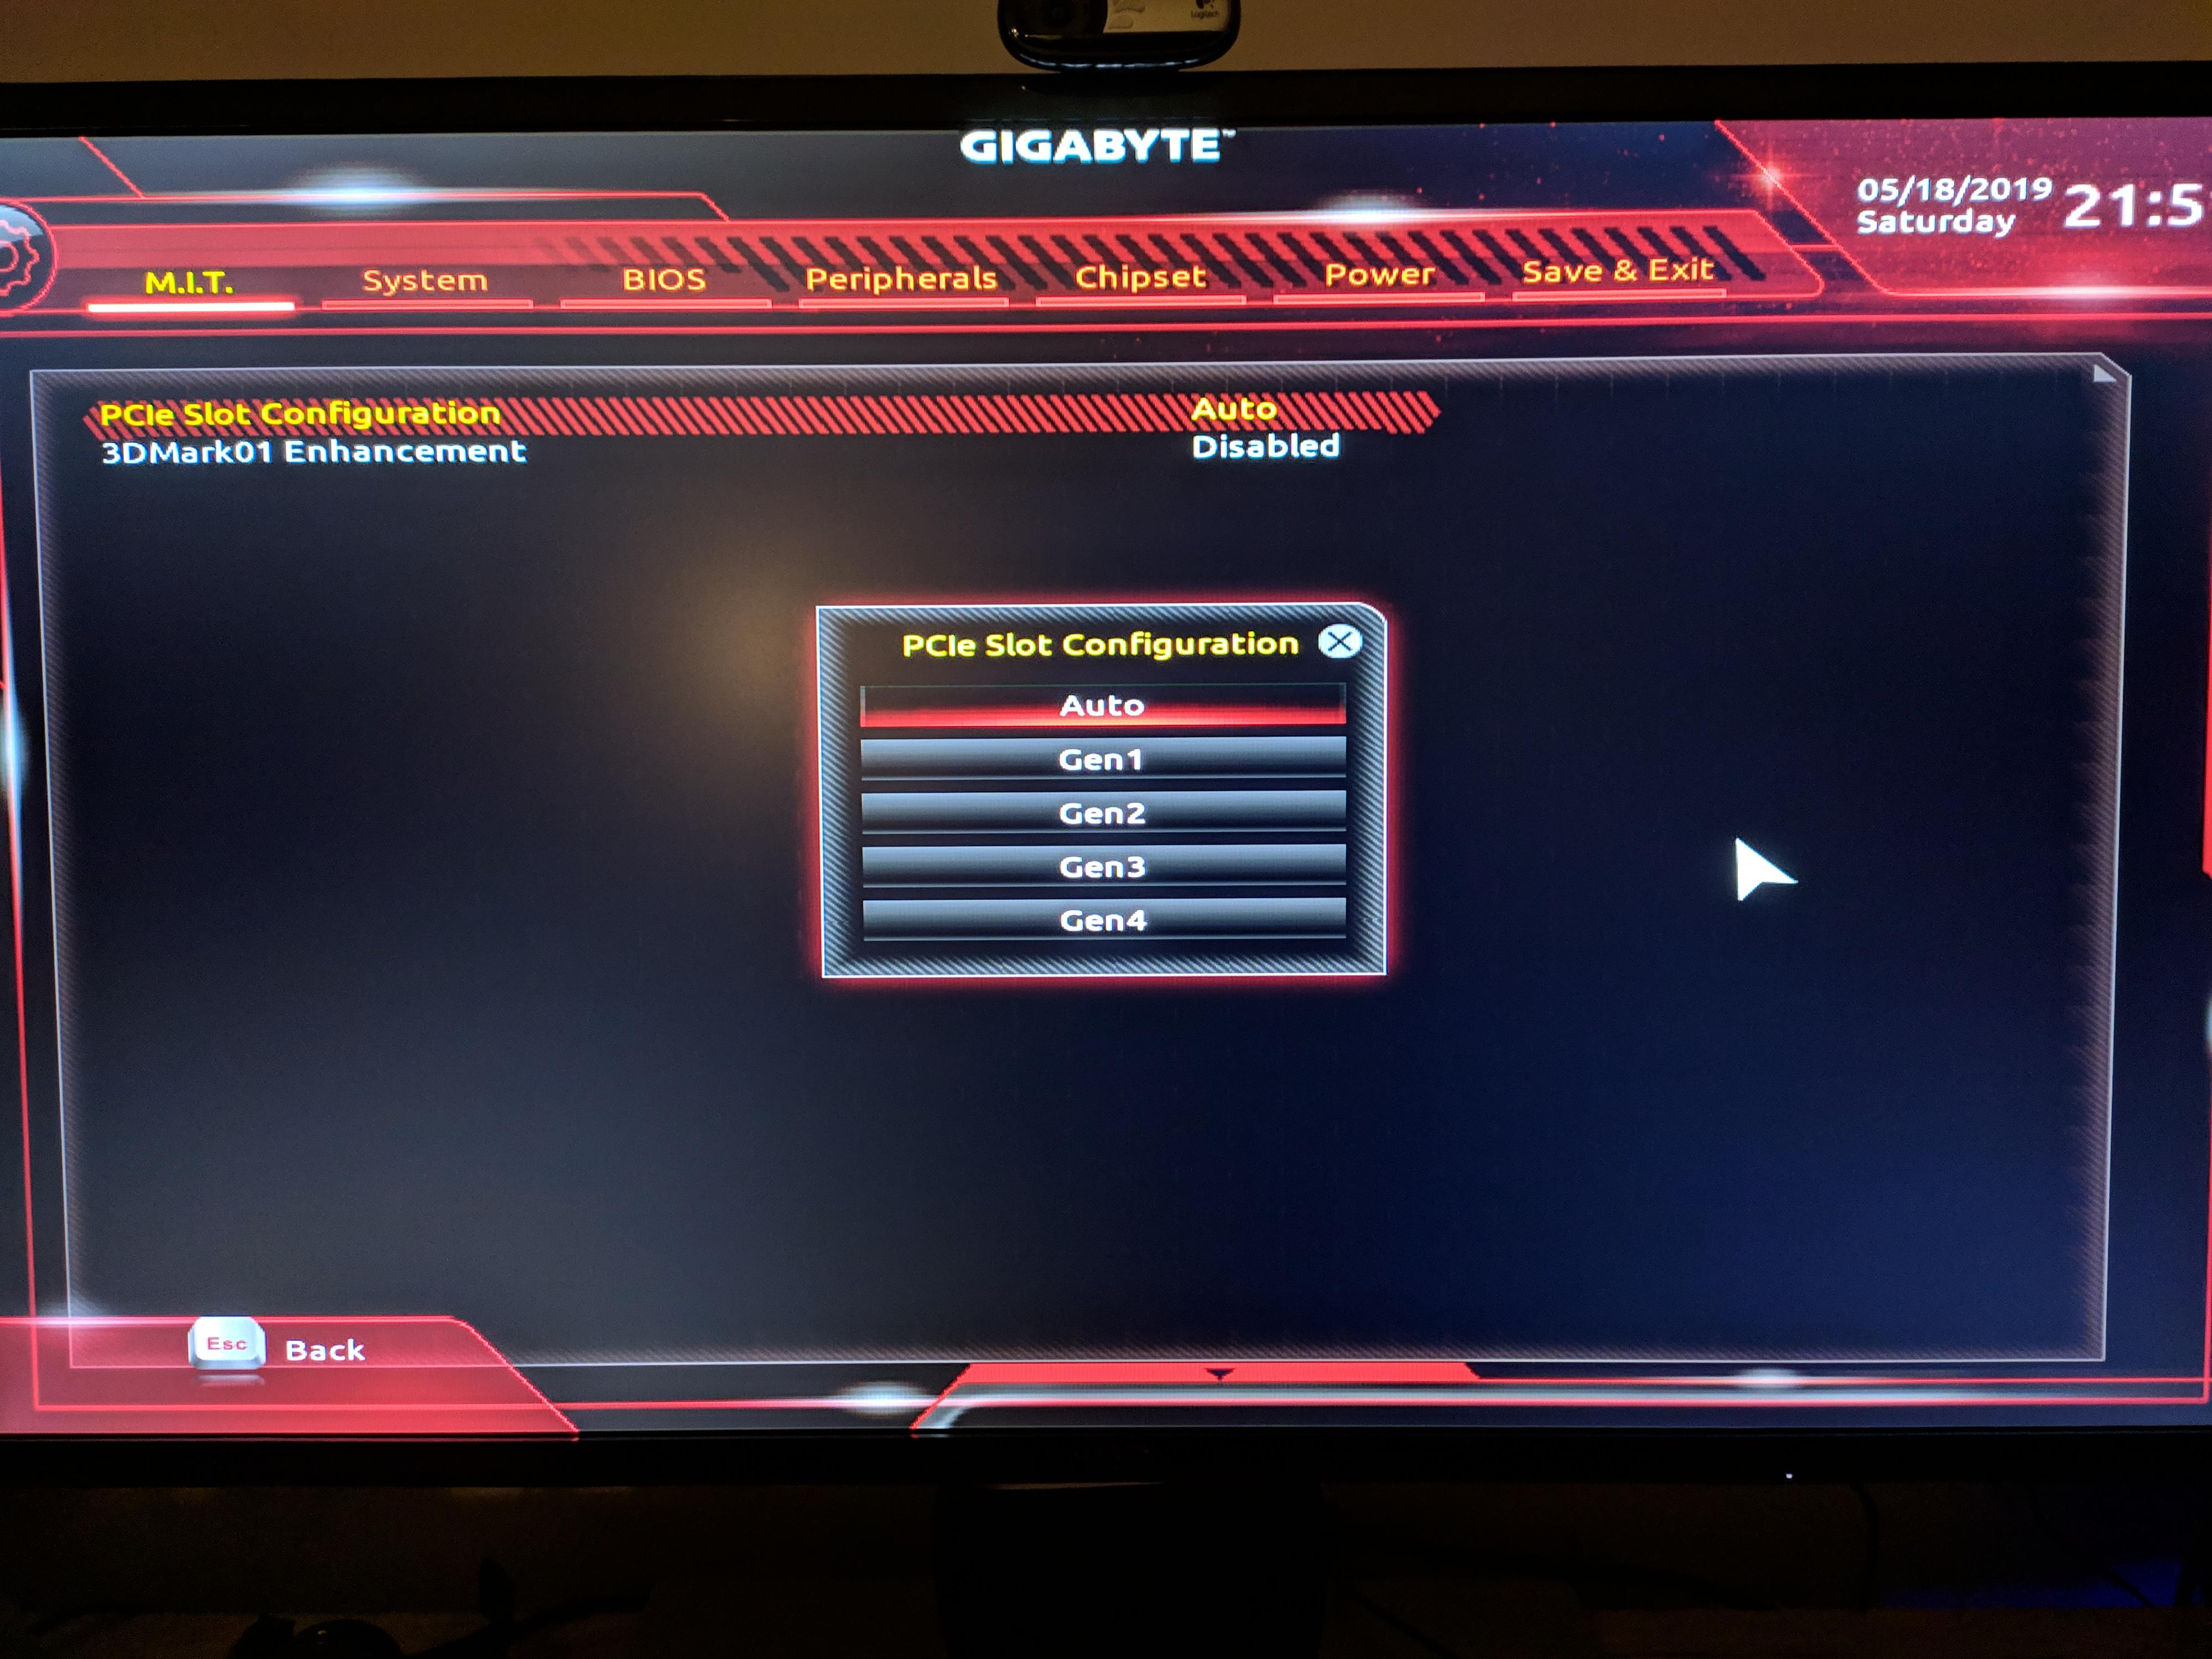 Gigabyte's latest BIOS update enables PCIe 4 0 support on